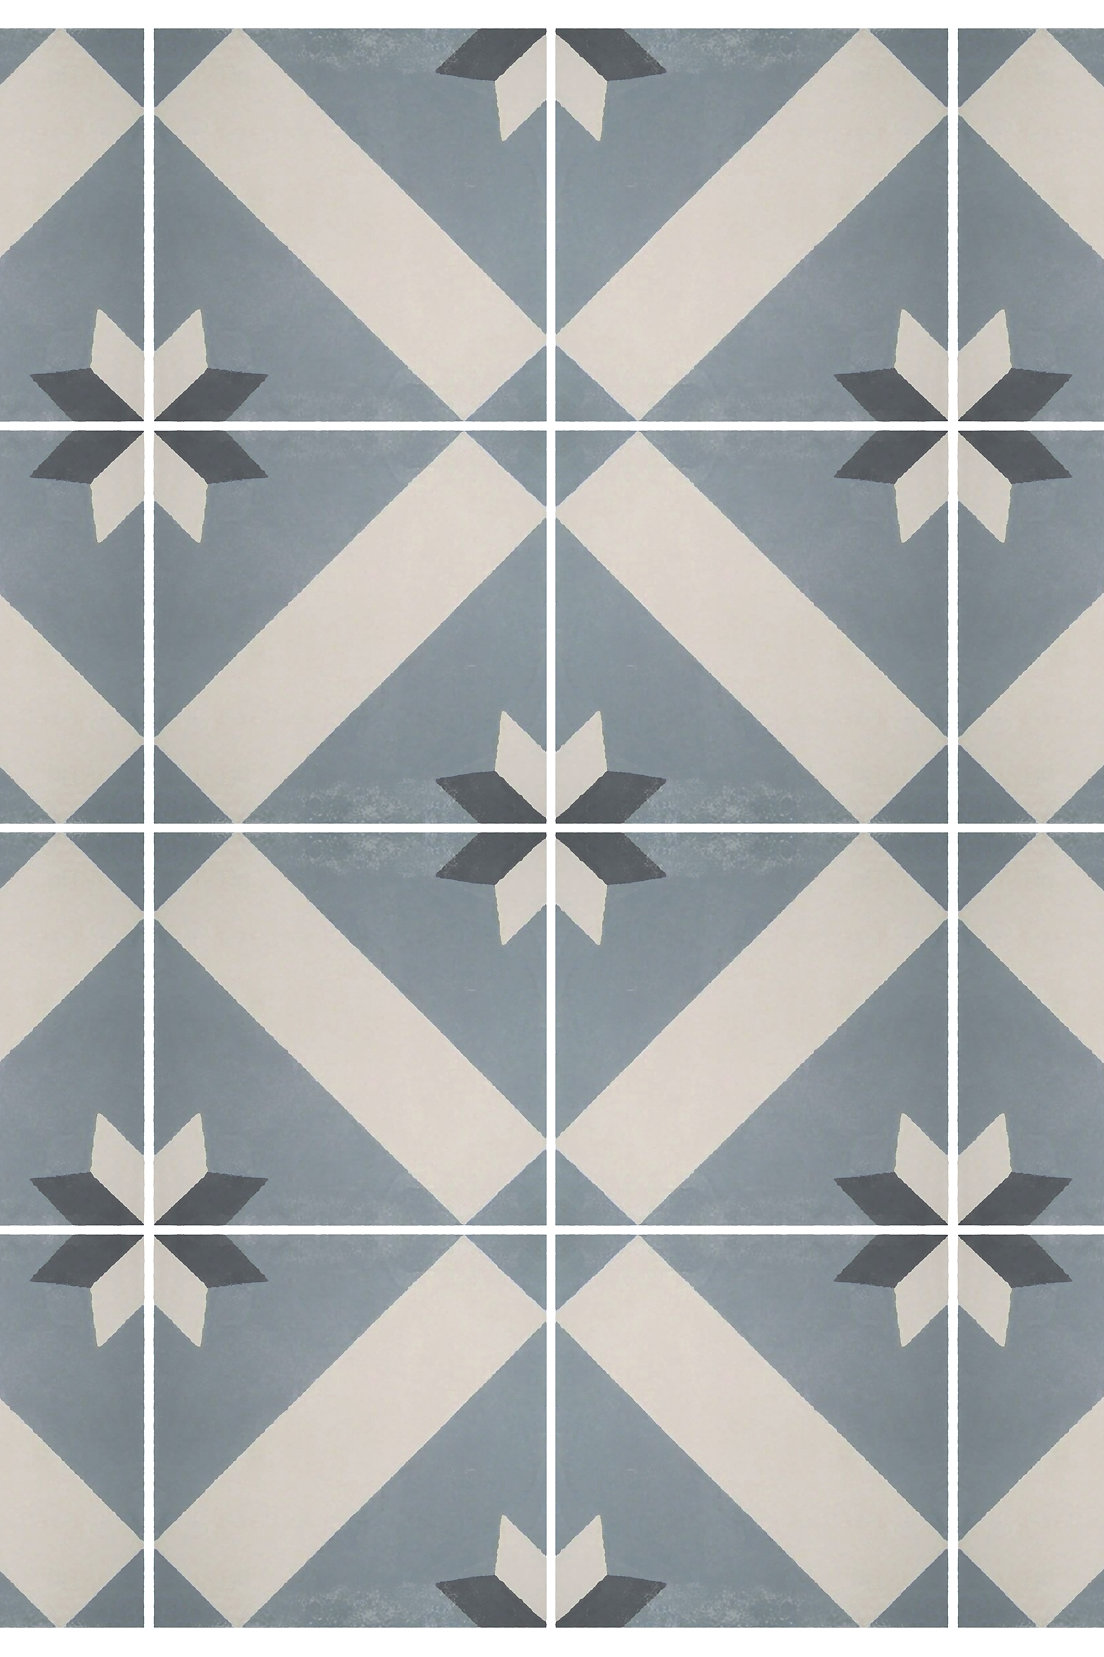 Quadrostyle vinyl floor tile sticker gustavian grey smoke quadrostyle offers you a new way to renovate your floors without hiring a tradesman our vinyl floor tile stickers are designed to cover your old floor dailygadgetfo Image collections